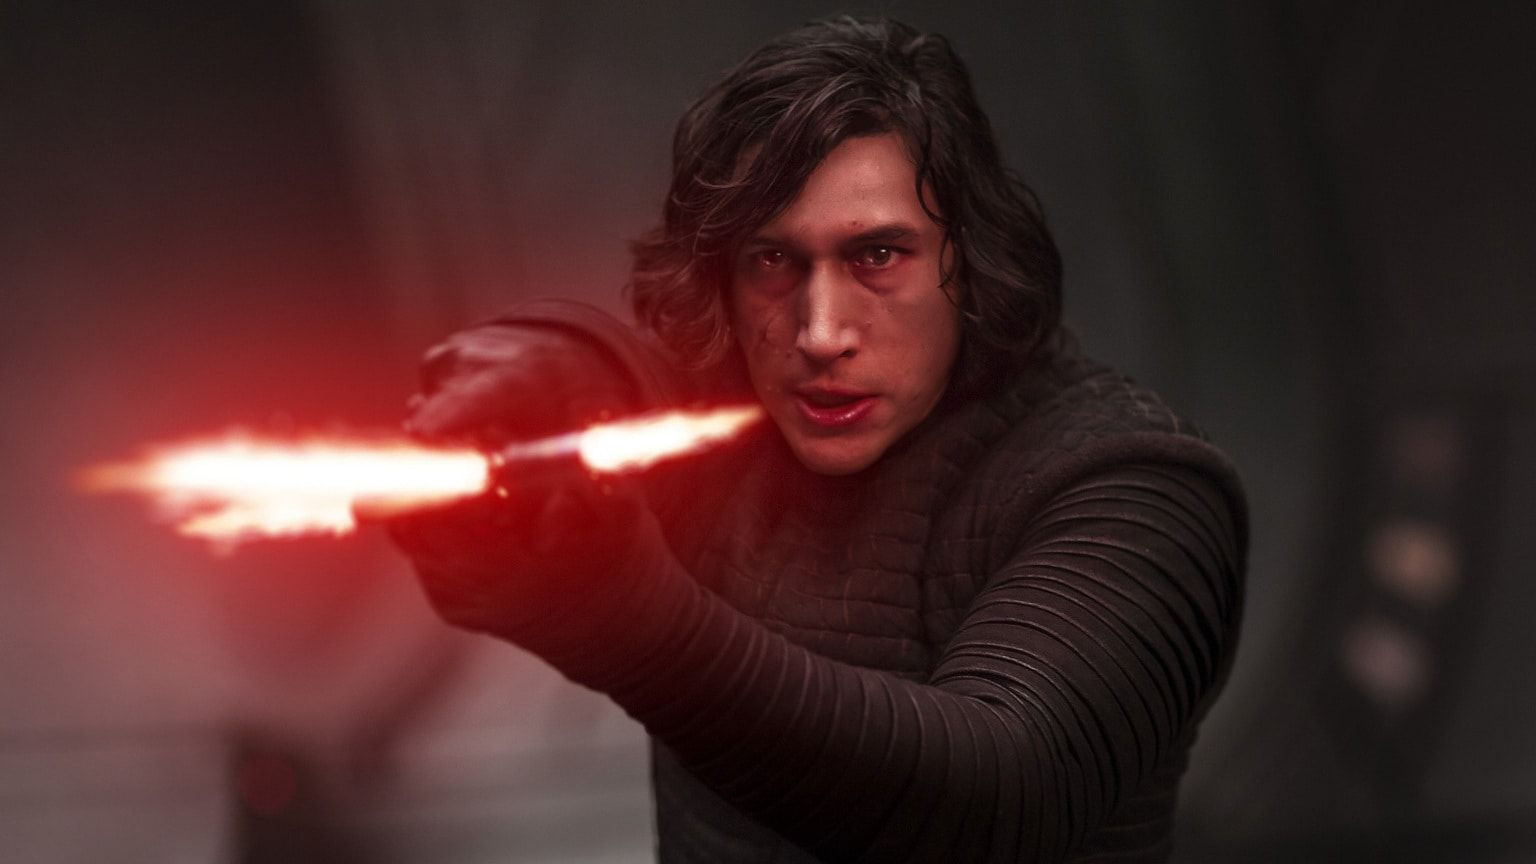 star-wars-episode-IX-trailer-kylo-ren